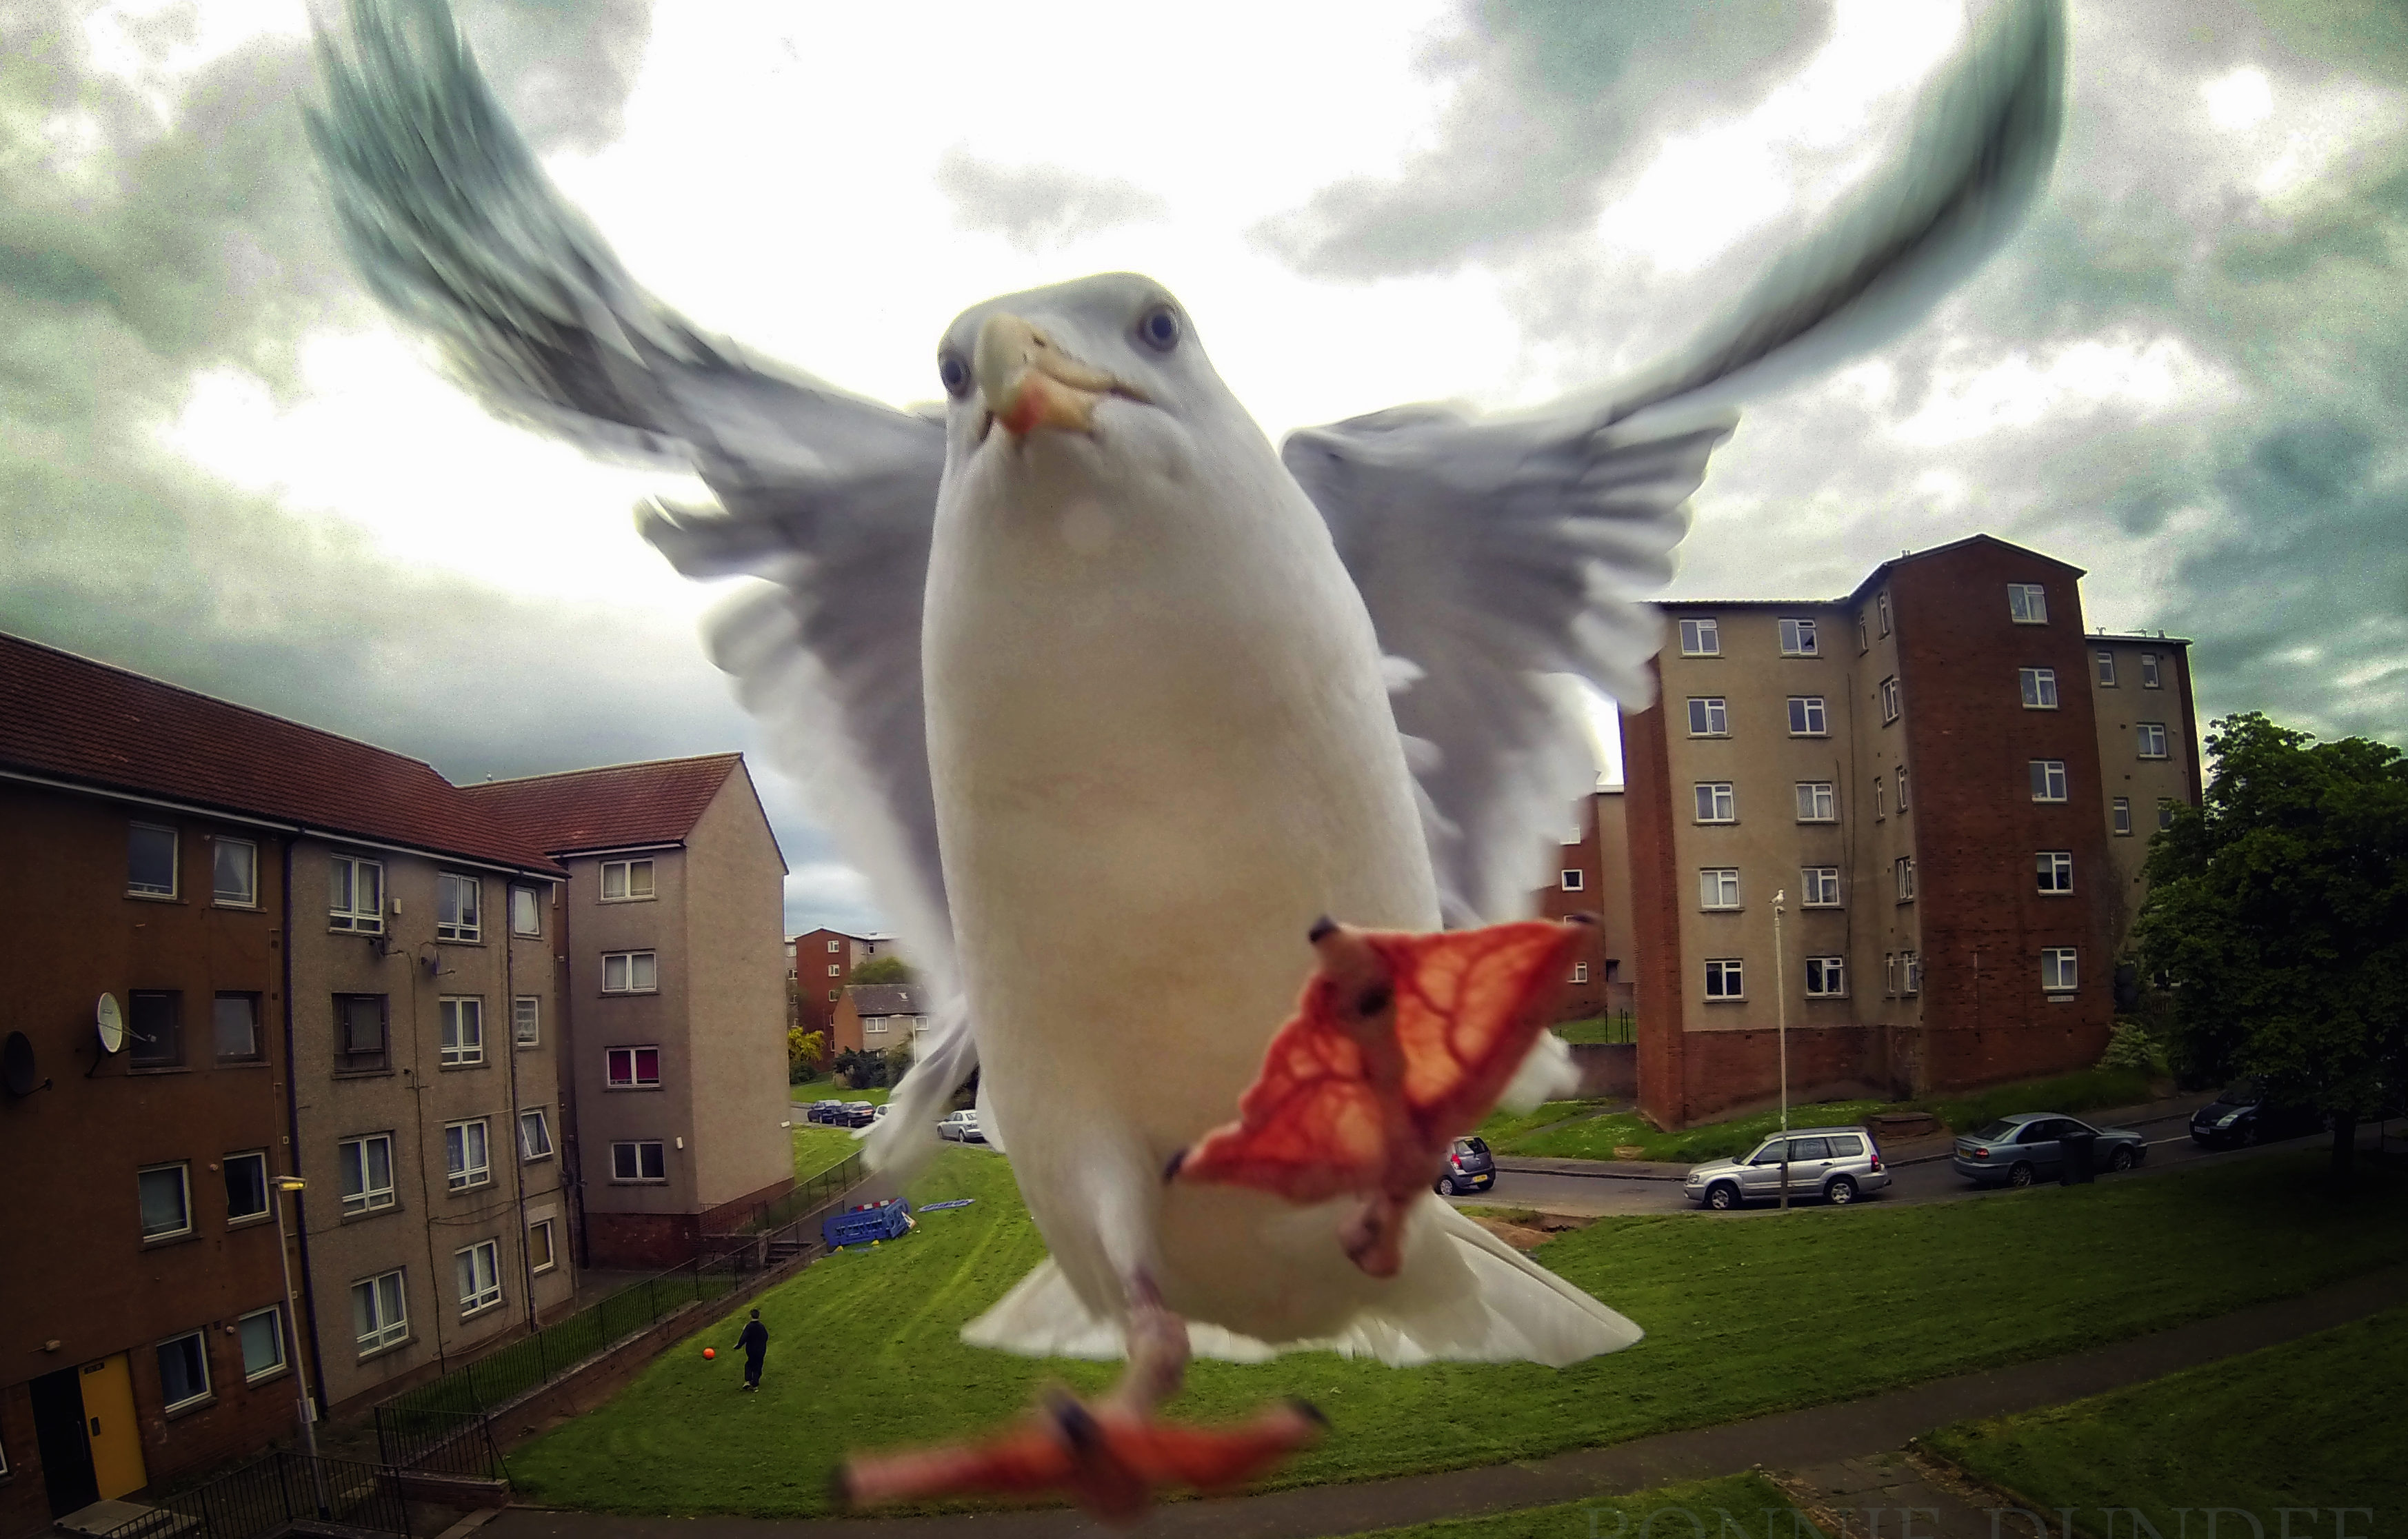 A seagull swoops for scraps in Menzieshill area of Dundee